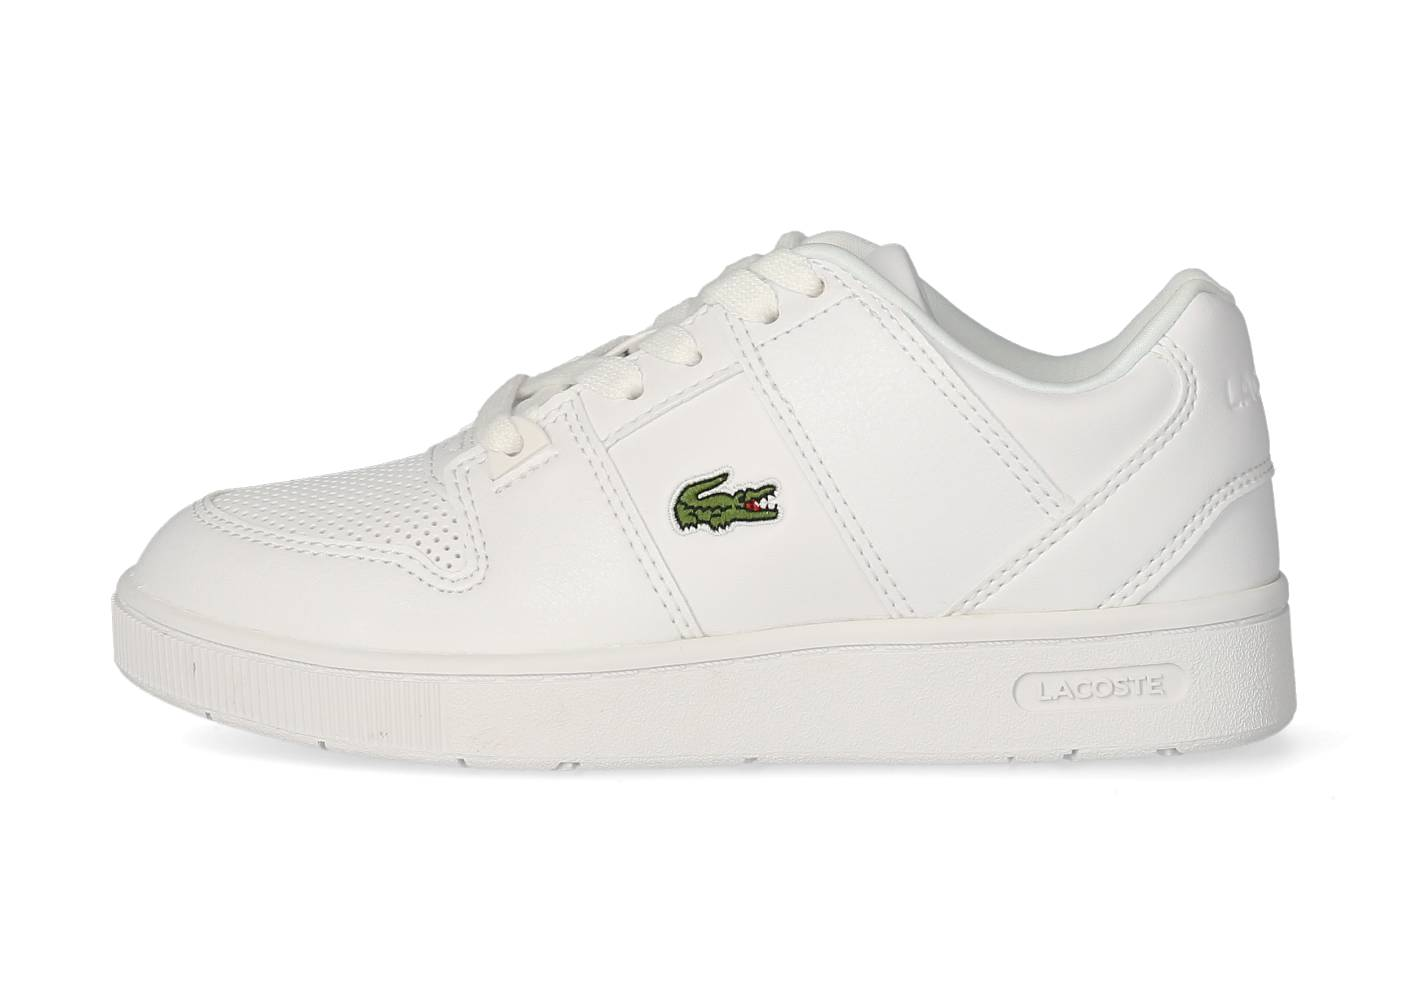 Lacoste Tennis Lacoste Thrill Enfant Blanche 29